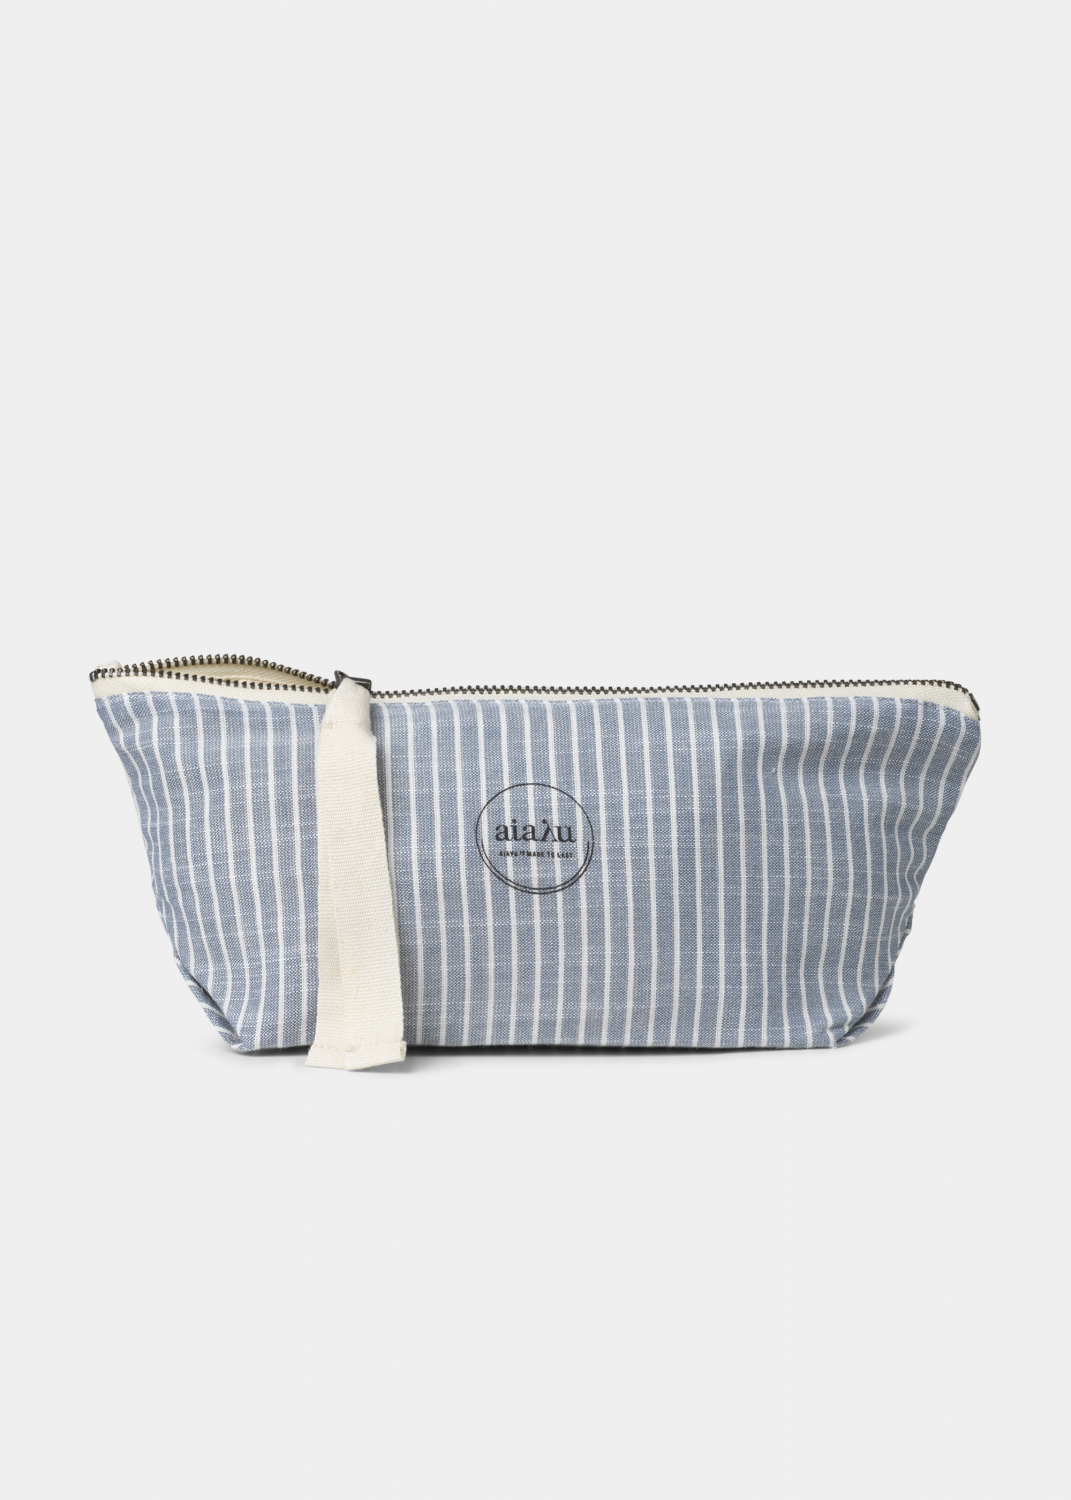 Clutches & Bags - Pouch Mini Striped